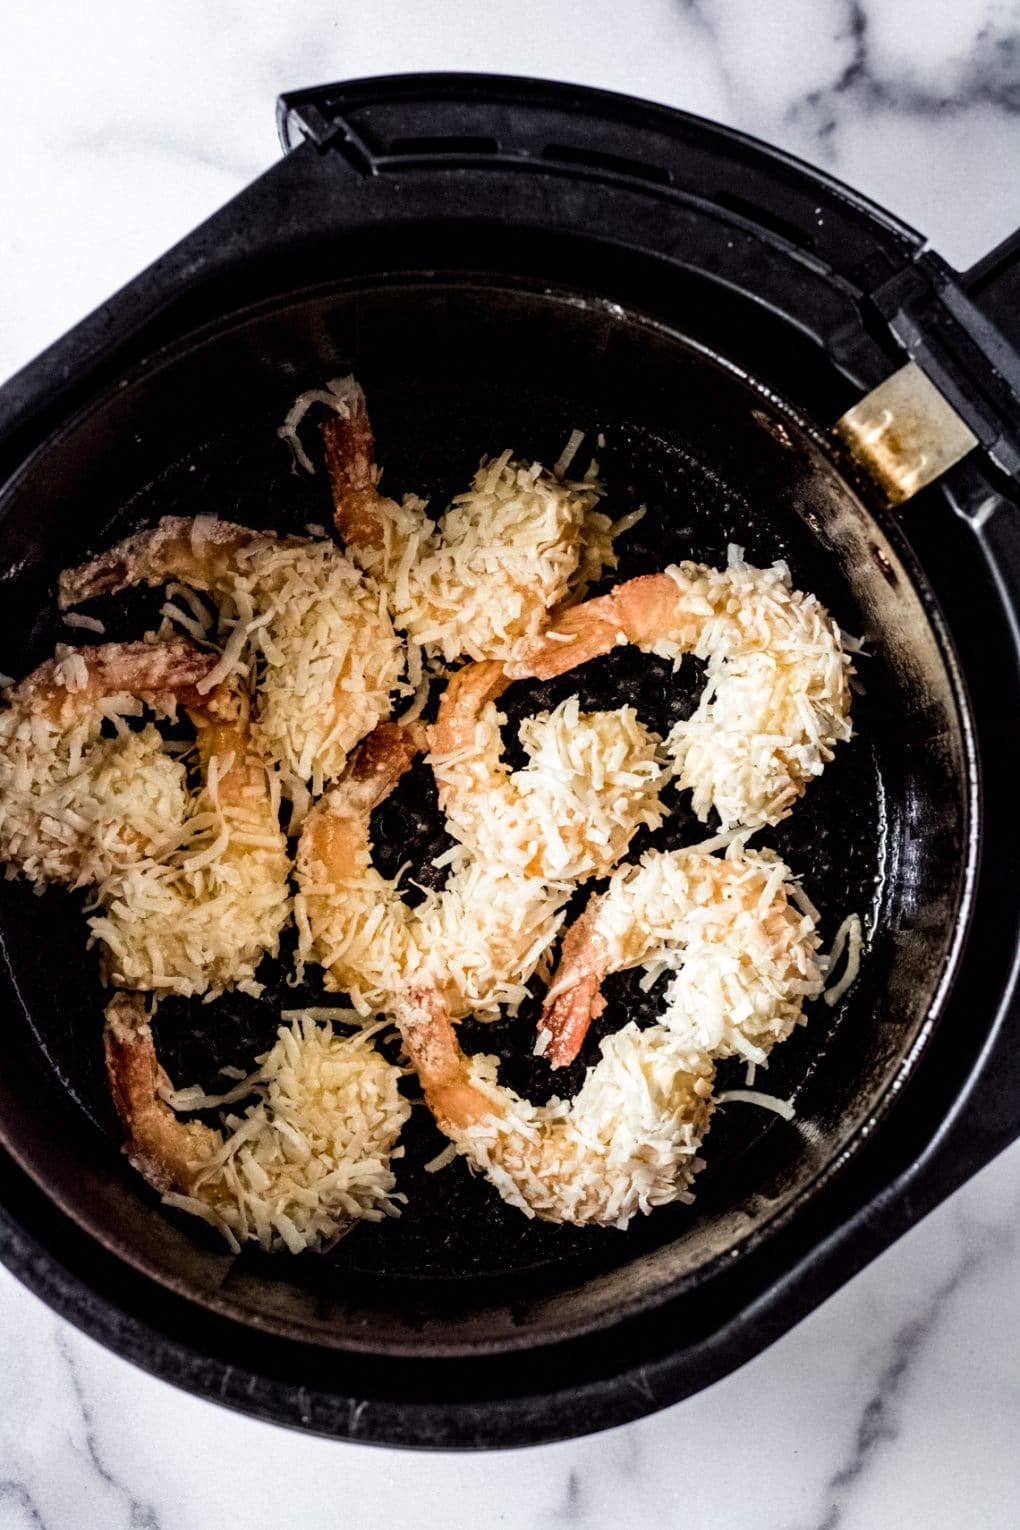 uncooked gluten-free coconut shrimp in an air fryer basket